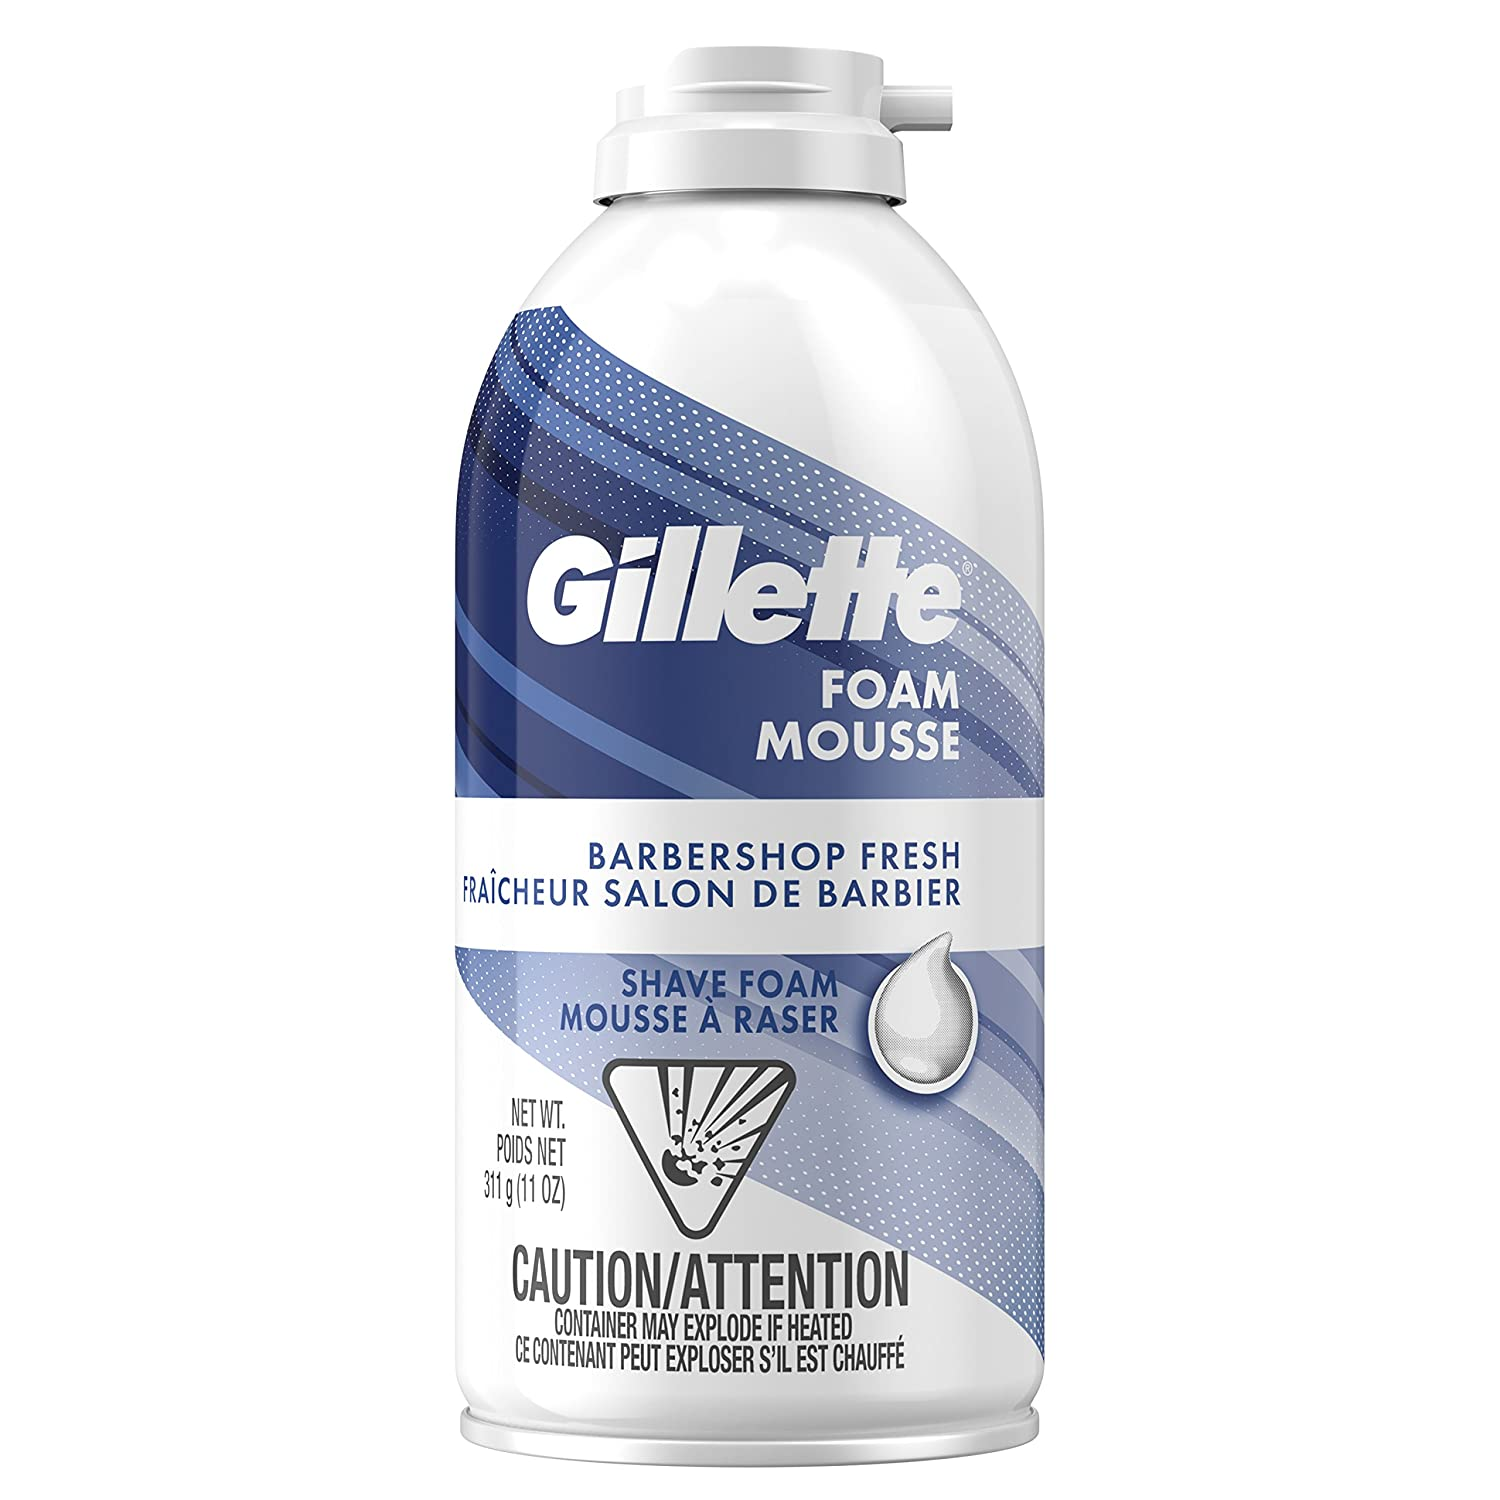 Gillette Foam Barbershop Fresh Shave Foam, 311g Procter and Gamble